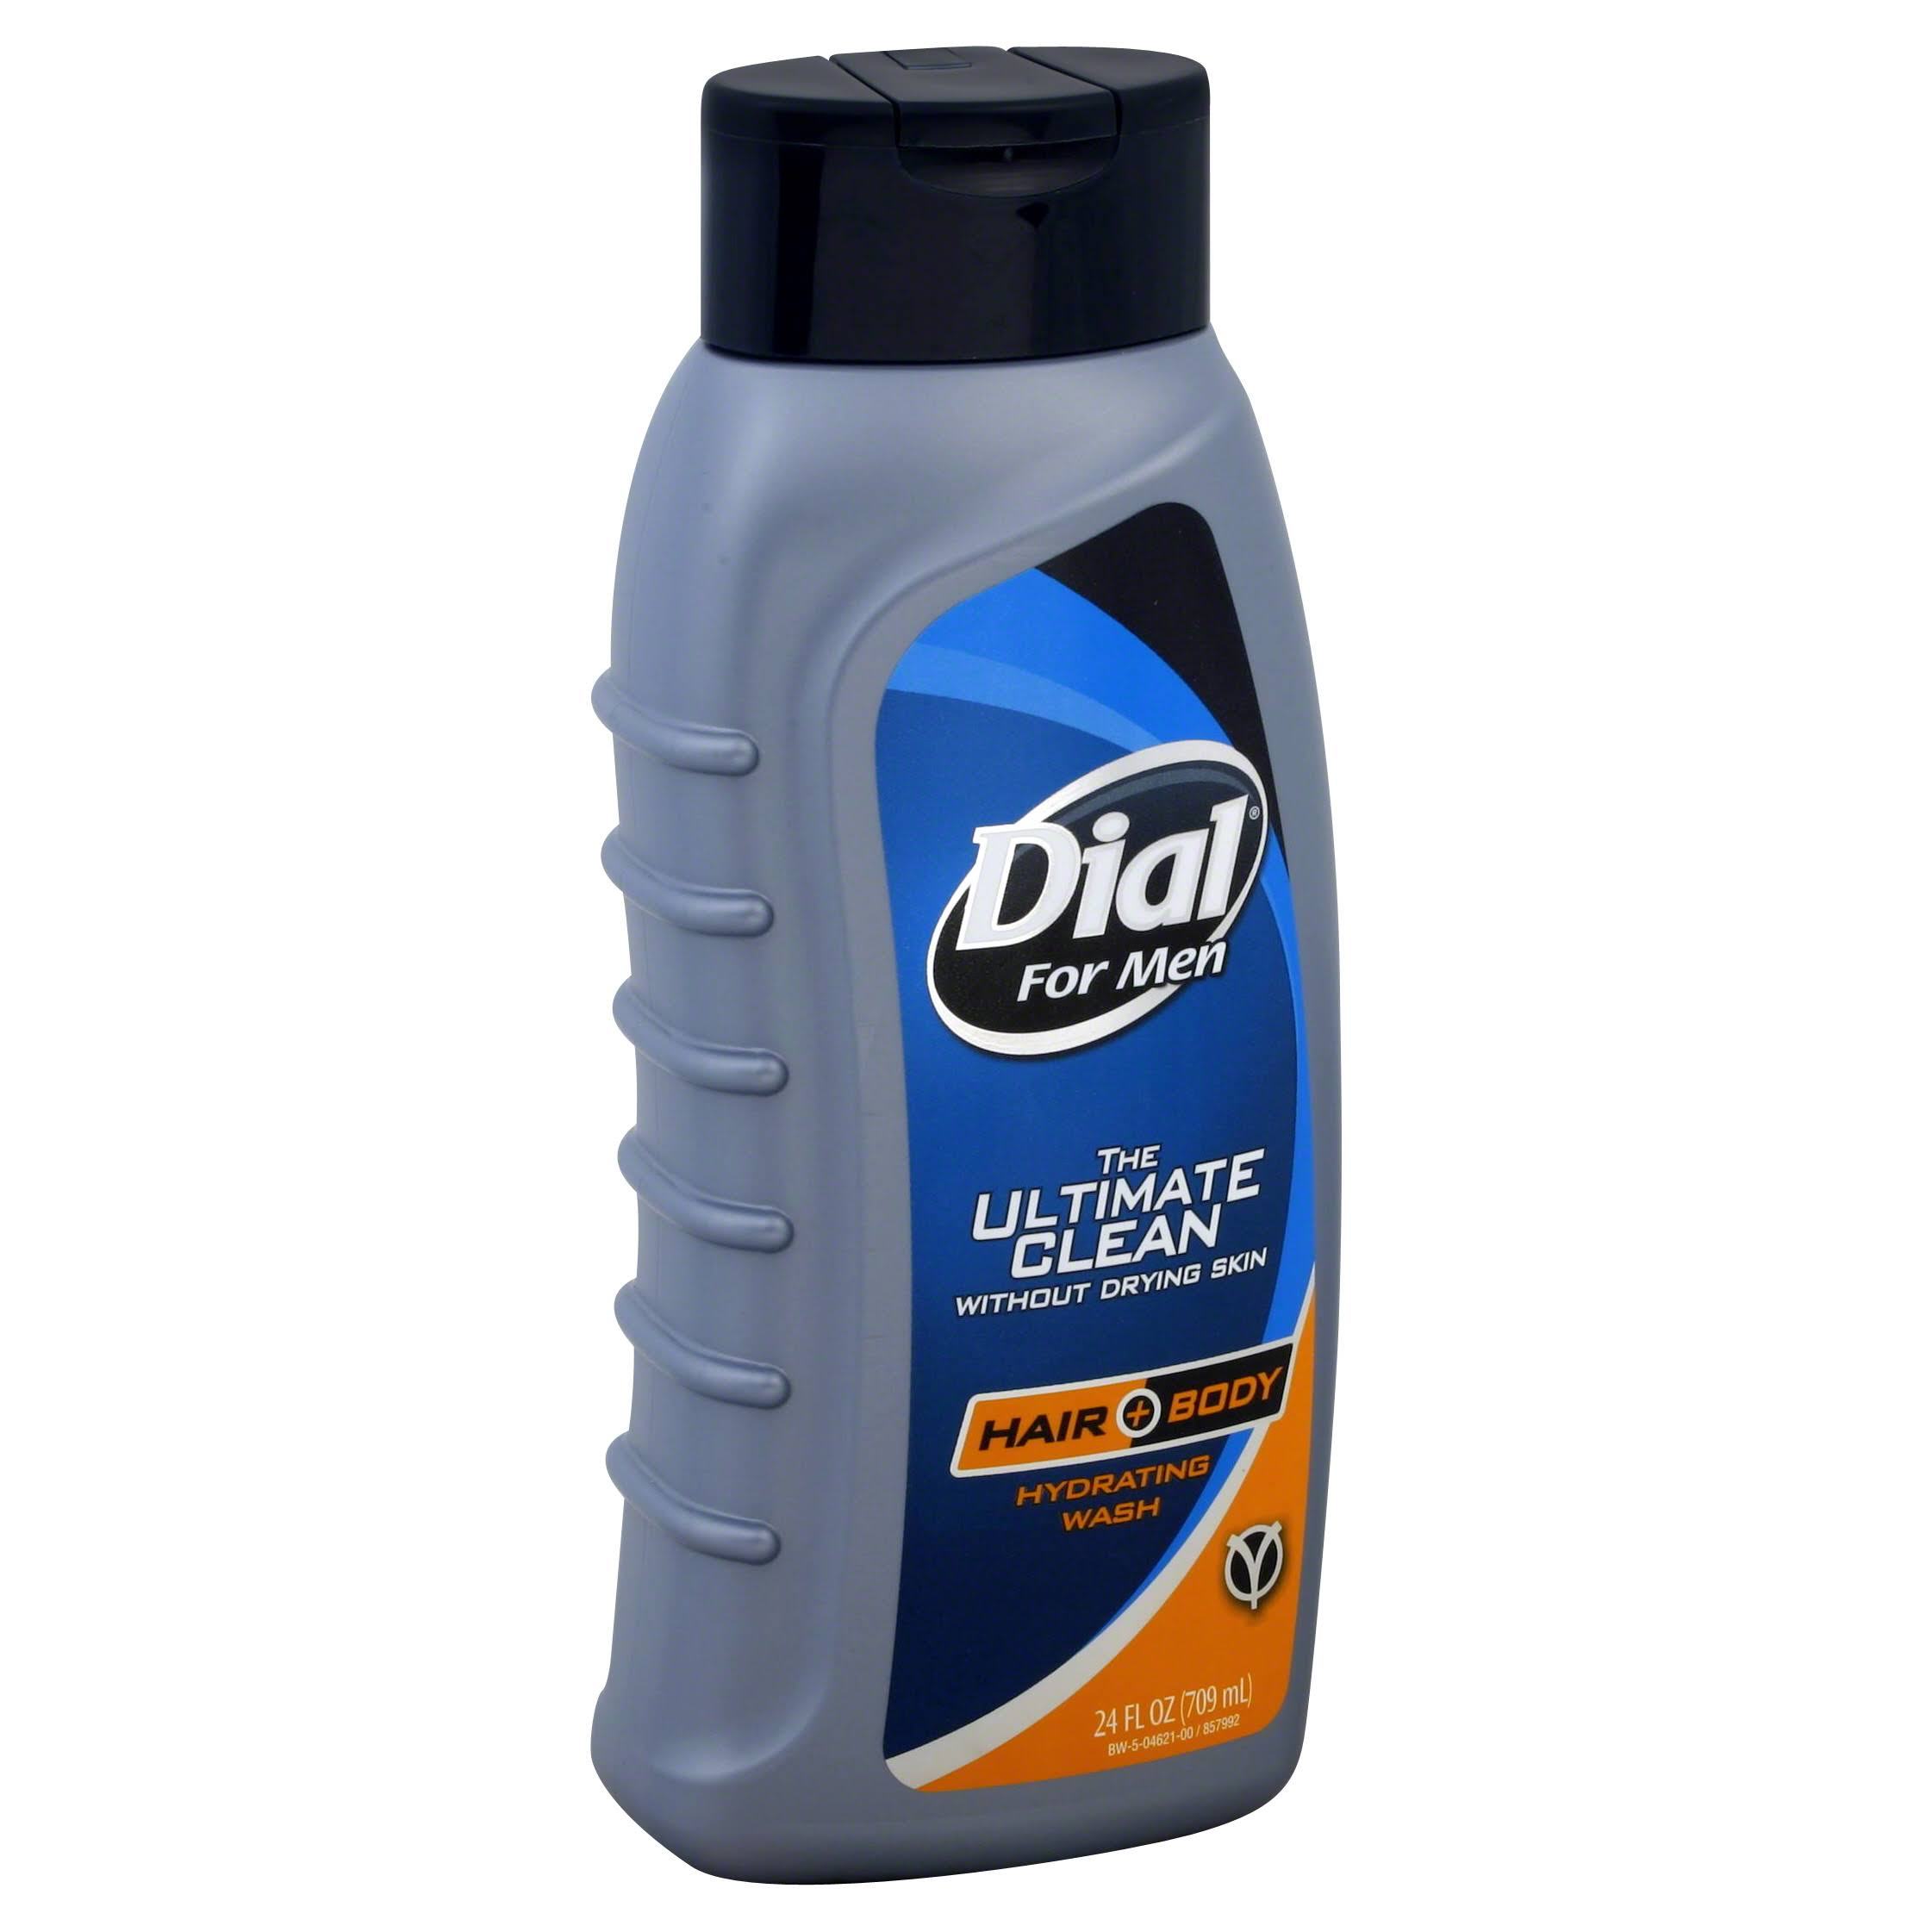 Dial for Men Hair and Body Wash - 21oz